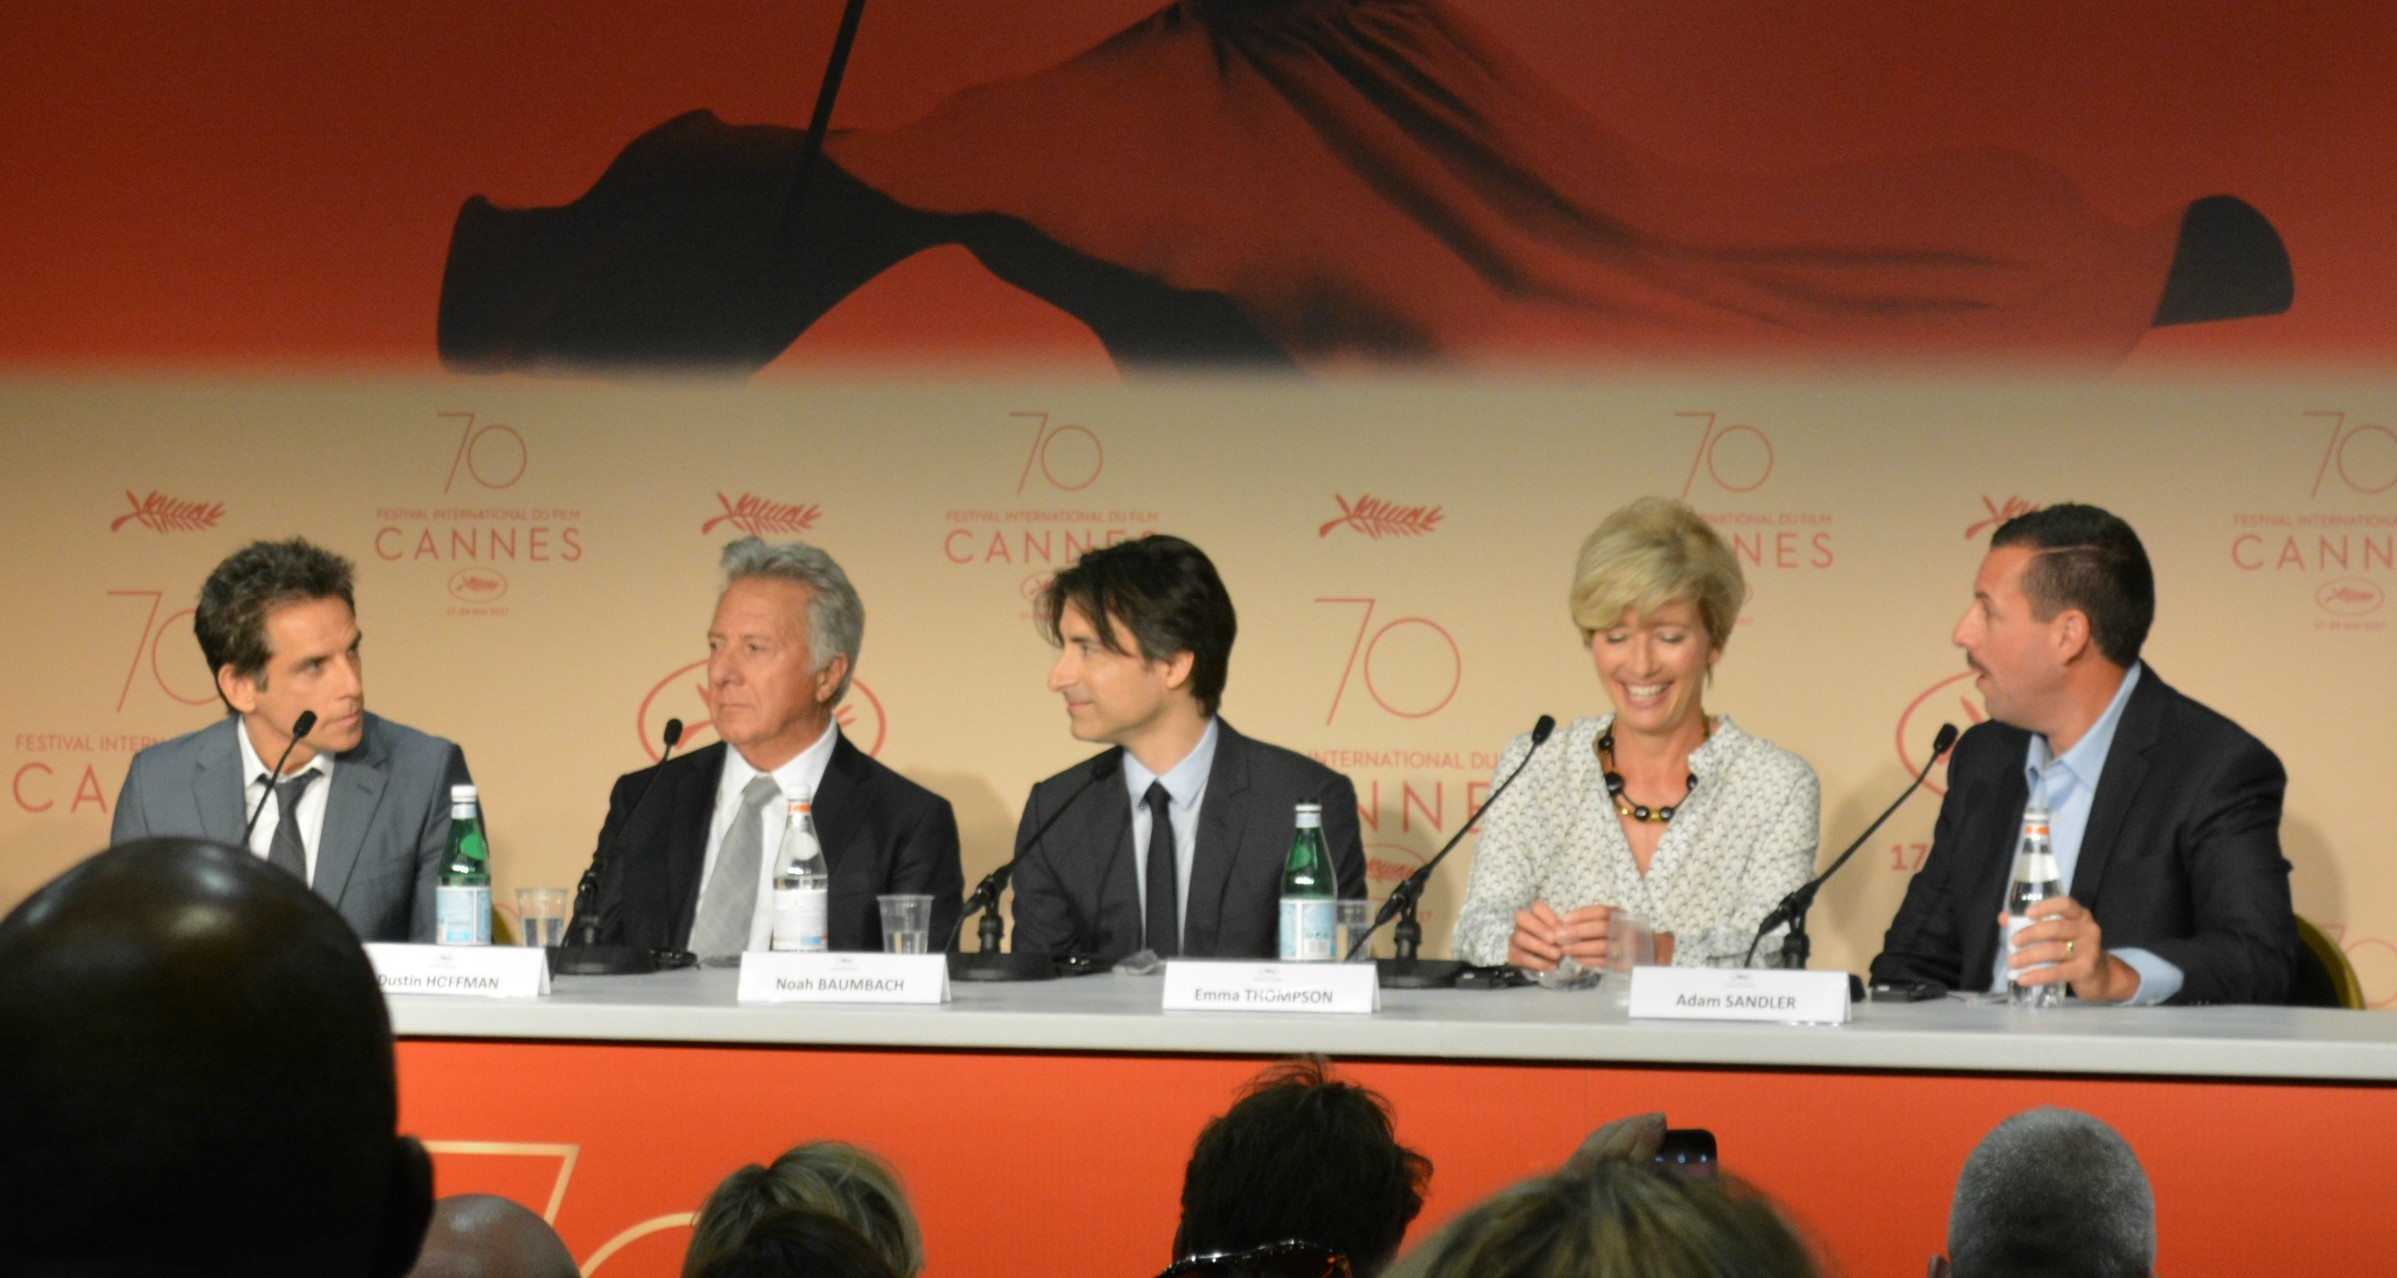 festival de cannes 2017, netflix, the meyerowitz stories, noah baumbach, ben stiller, adam sandler, dustin hoffman, emma thompson